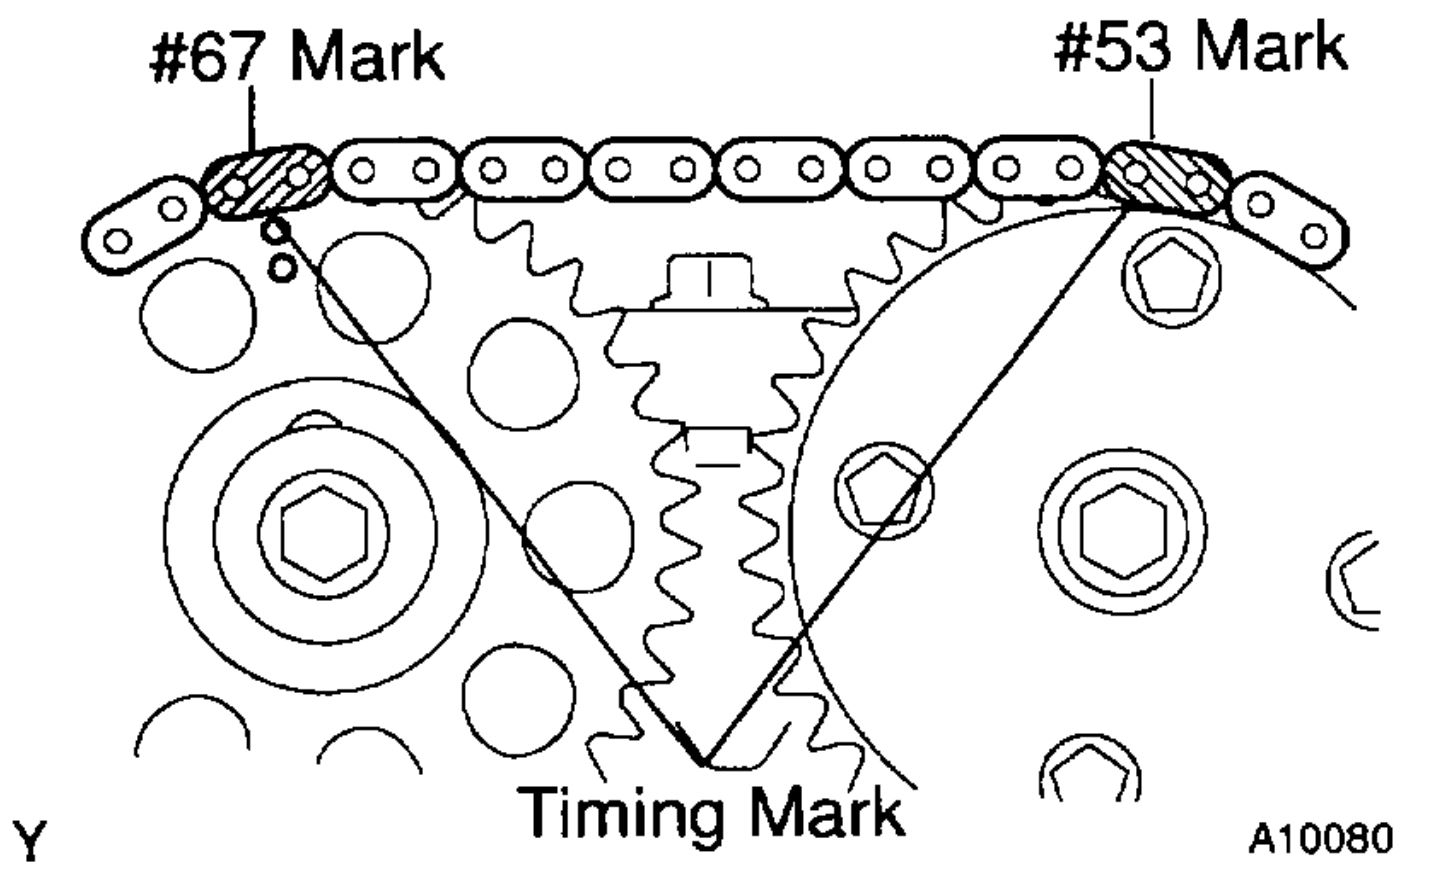 2000 Toyota Corolla Timing Chain Diagram - Wiring Diagrams